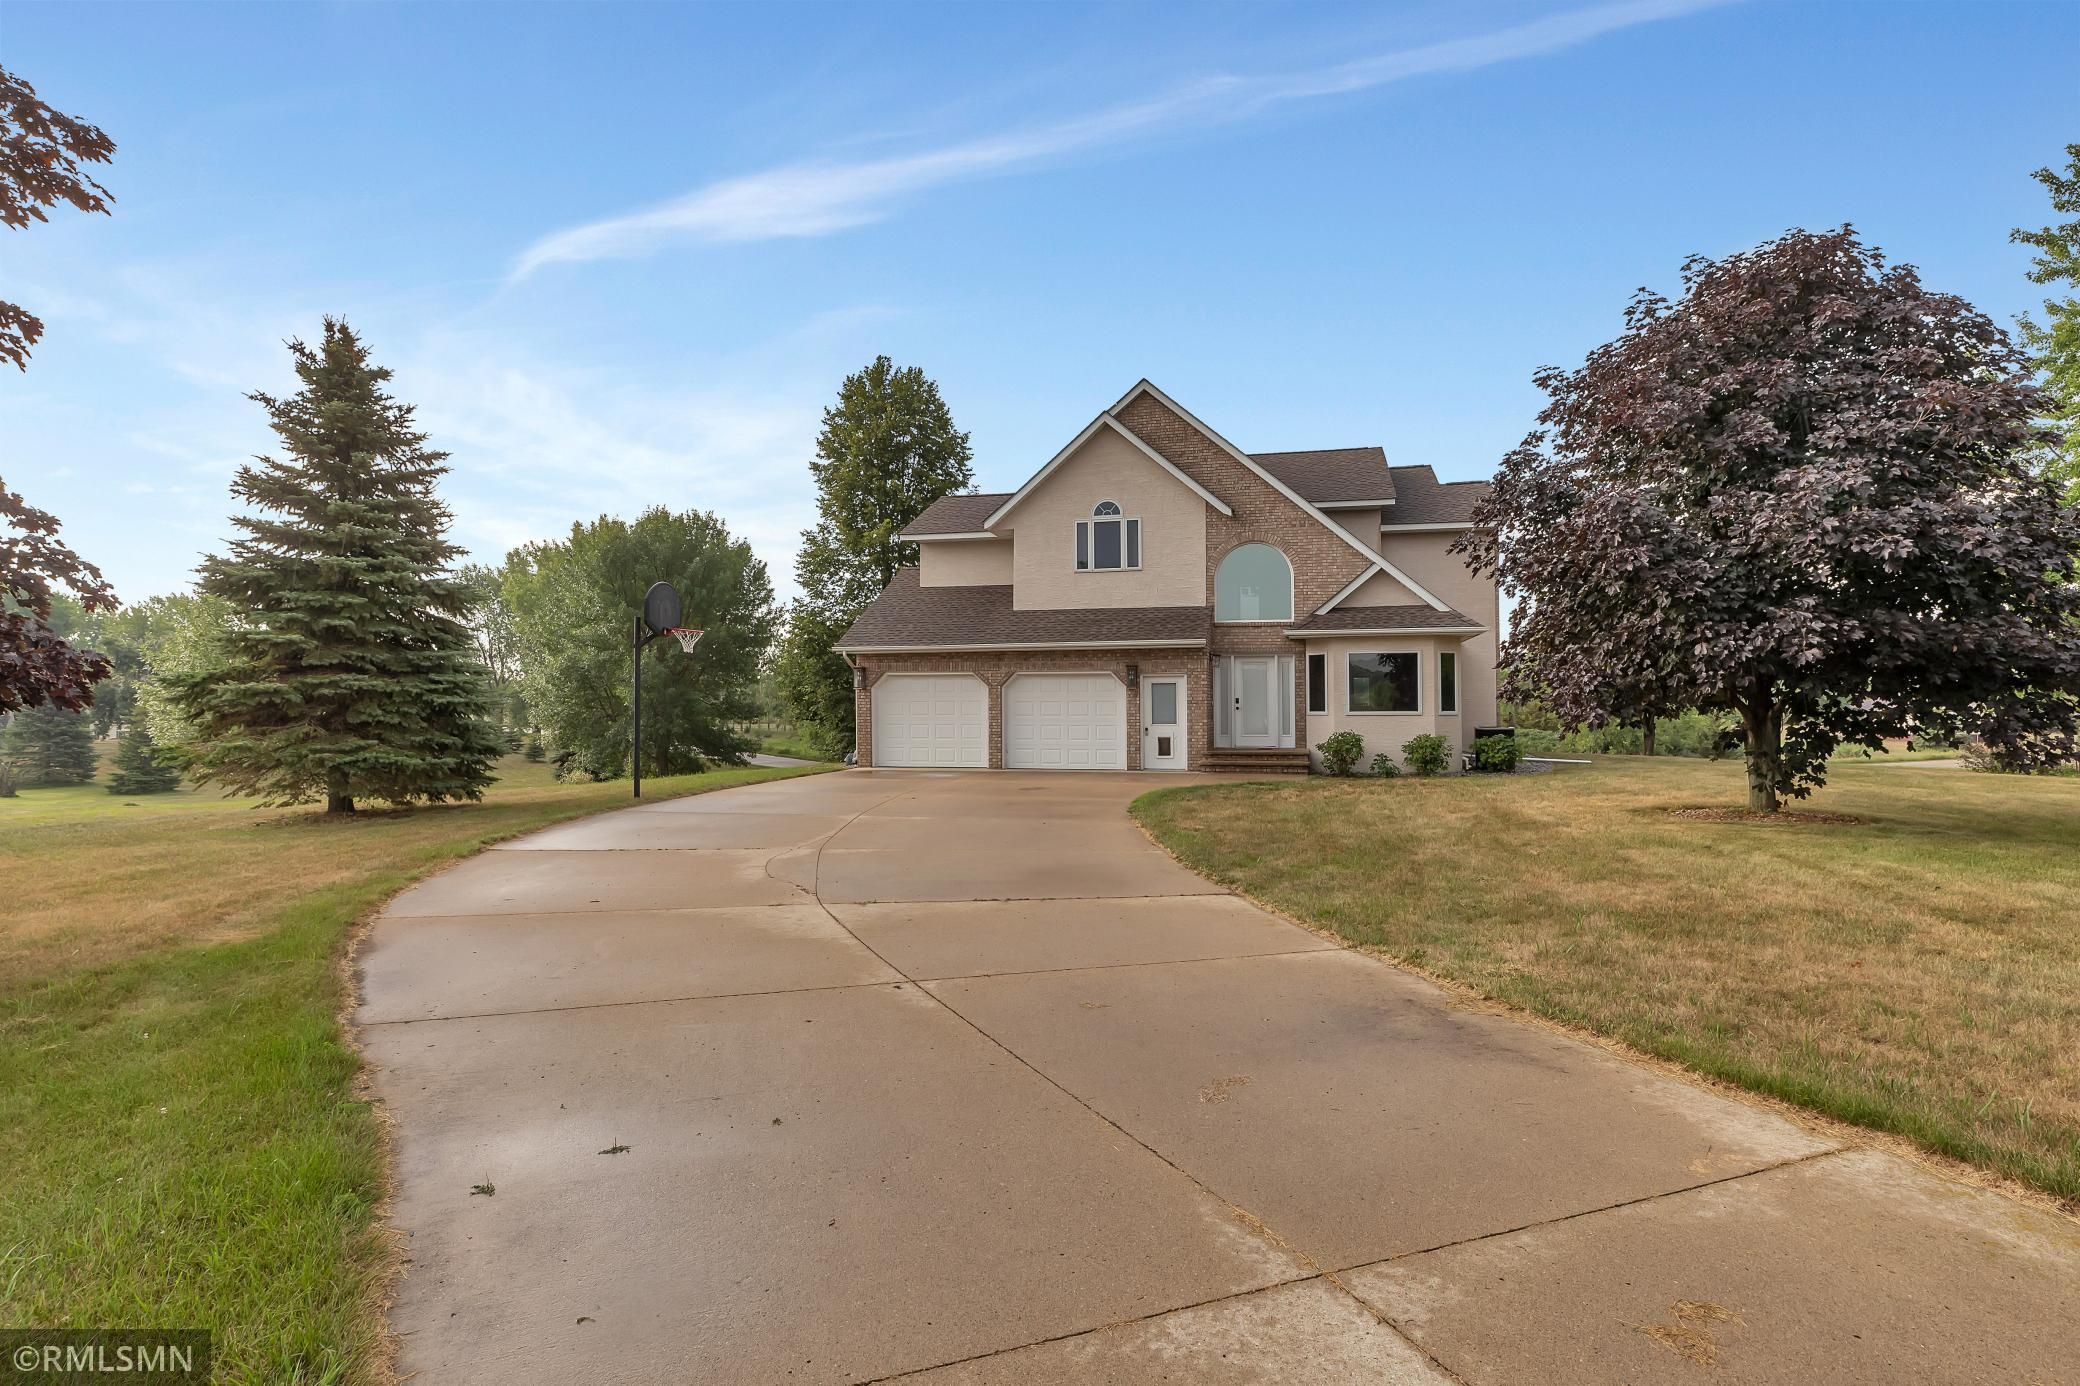 Spacious, Executive Style Home Sitting on 1.19 Acres in Oakwood Manor.  Just Minutes From Spicer, This 4 Bedroom 4 Bath Home Features Cathedral Vault Ceilings, Main Floor Office & Laundry and Spacious Kitchen with Ample Storage.  Large Master with Suite  On The Upper Level And Large Entertaining Space Can Be Found In The Walkout Basement. Large Yard, Front & Back Concrete Driveways, Large Lower Level Patio & Deck off The Main Finish Off The Outside. Many Updates Throughout Including New Roof in 2021.  Don't Miss Your Chance To See This One- Call or Message For Your Tour Today!